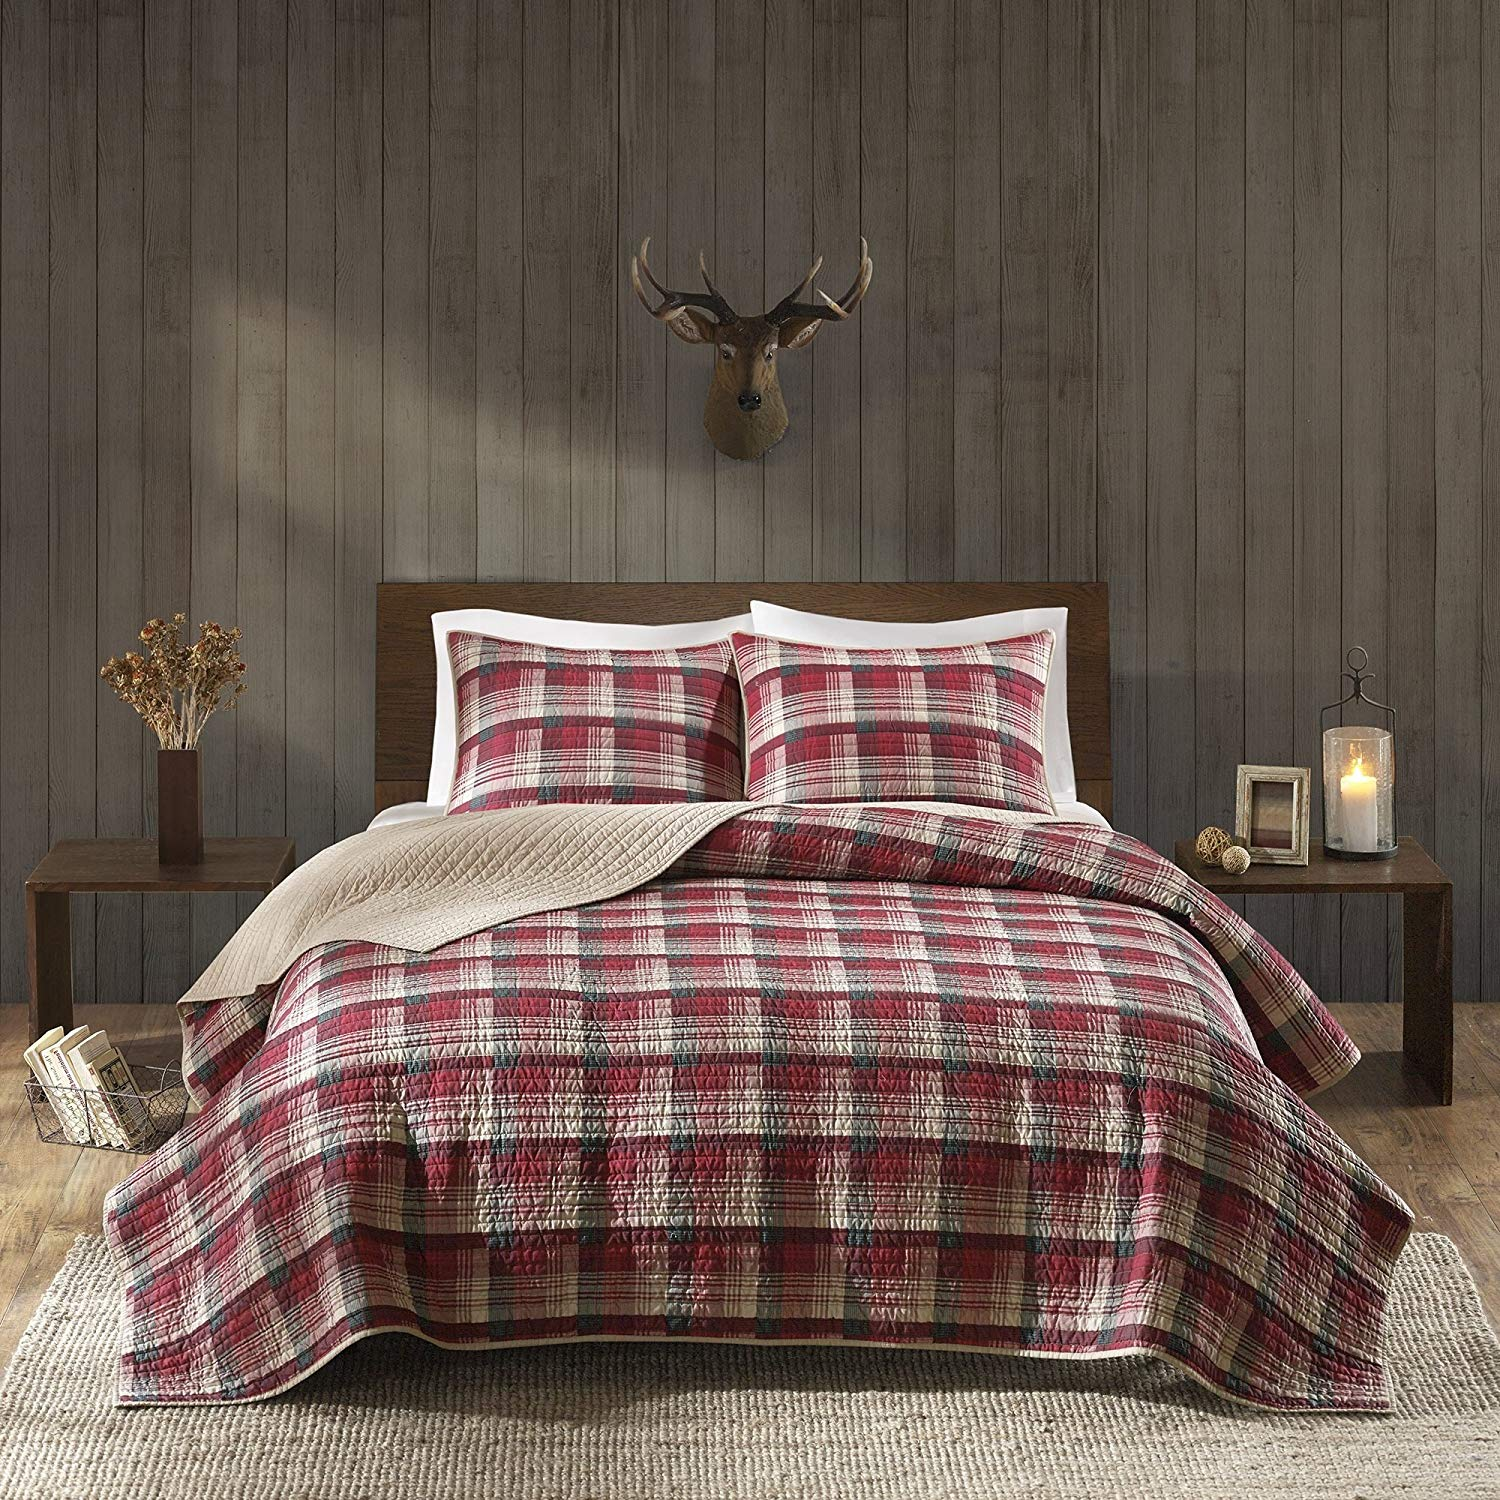 D&H 3 Piece Black Tan Red Plaid Quilt King/Cal King Set, Tartan Checked Pattern Bedding Cabin Lodge Themed Madras Checkered Squares Southwest Western Patchwork Reverse Solid Color, Cotton